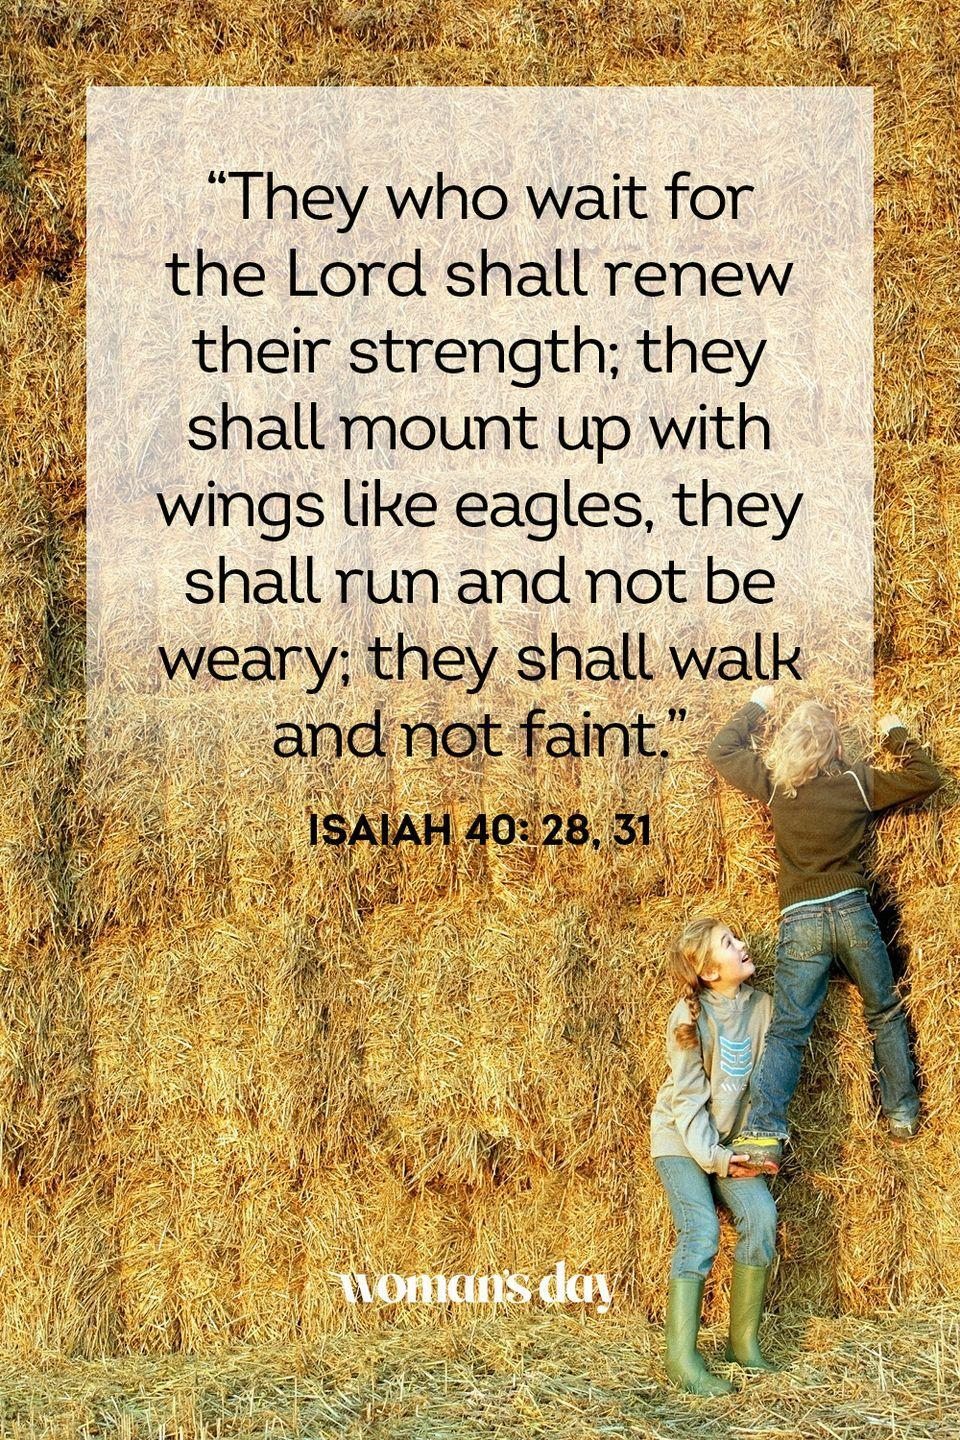 "<p>""They who wait for the Lord shall renew their strength; they shall mount up with wings like eagles, they shall run and not be weary; they shall walk and not faint.""</p><p><strong>The Good News: </strong>Those who call on the Lord in faith will find strength they did not know they possessed.</p>"